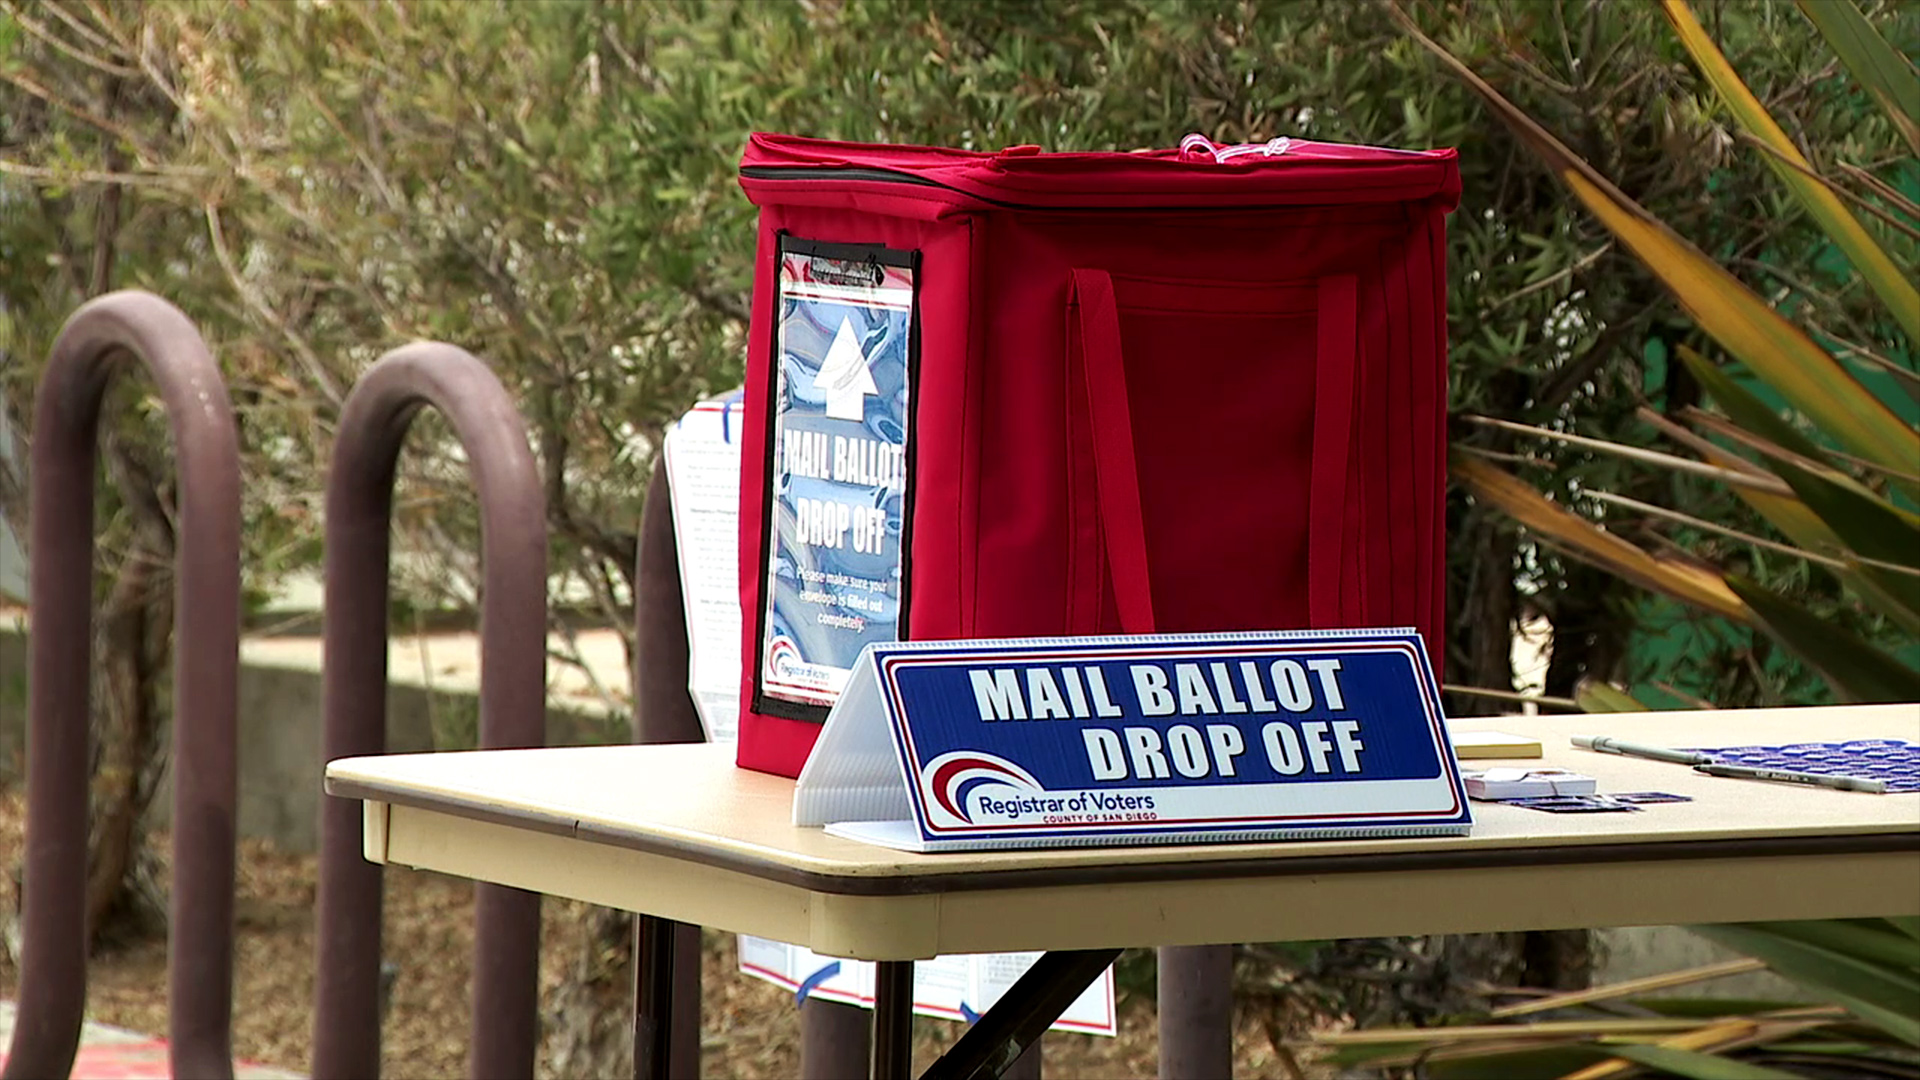 Mail Ballot Drop Boxes Placed At City Libraries Fox 5 San Diego